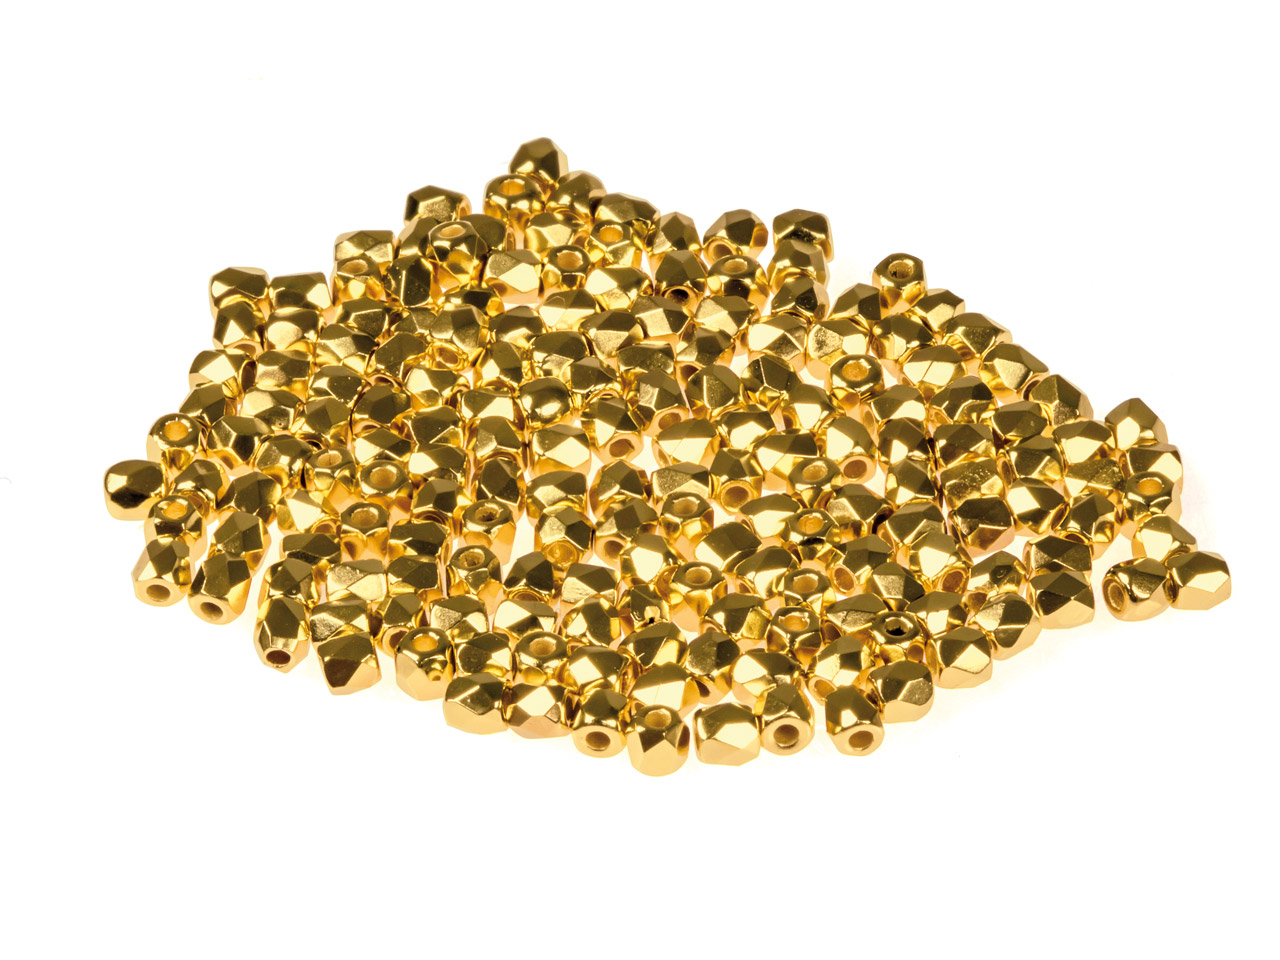 True2 2mm Czech Fire Polished      Beads, Crystal 24k Gold Plate, 2g  Pack